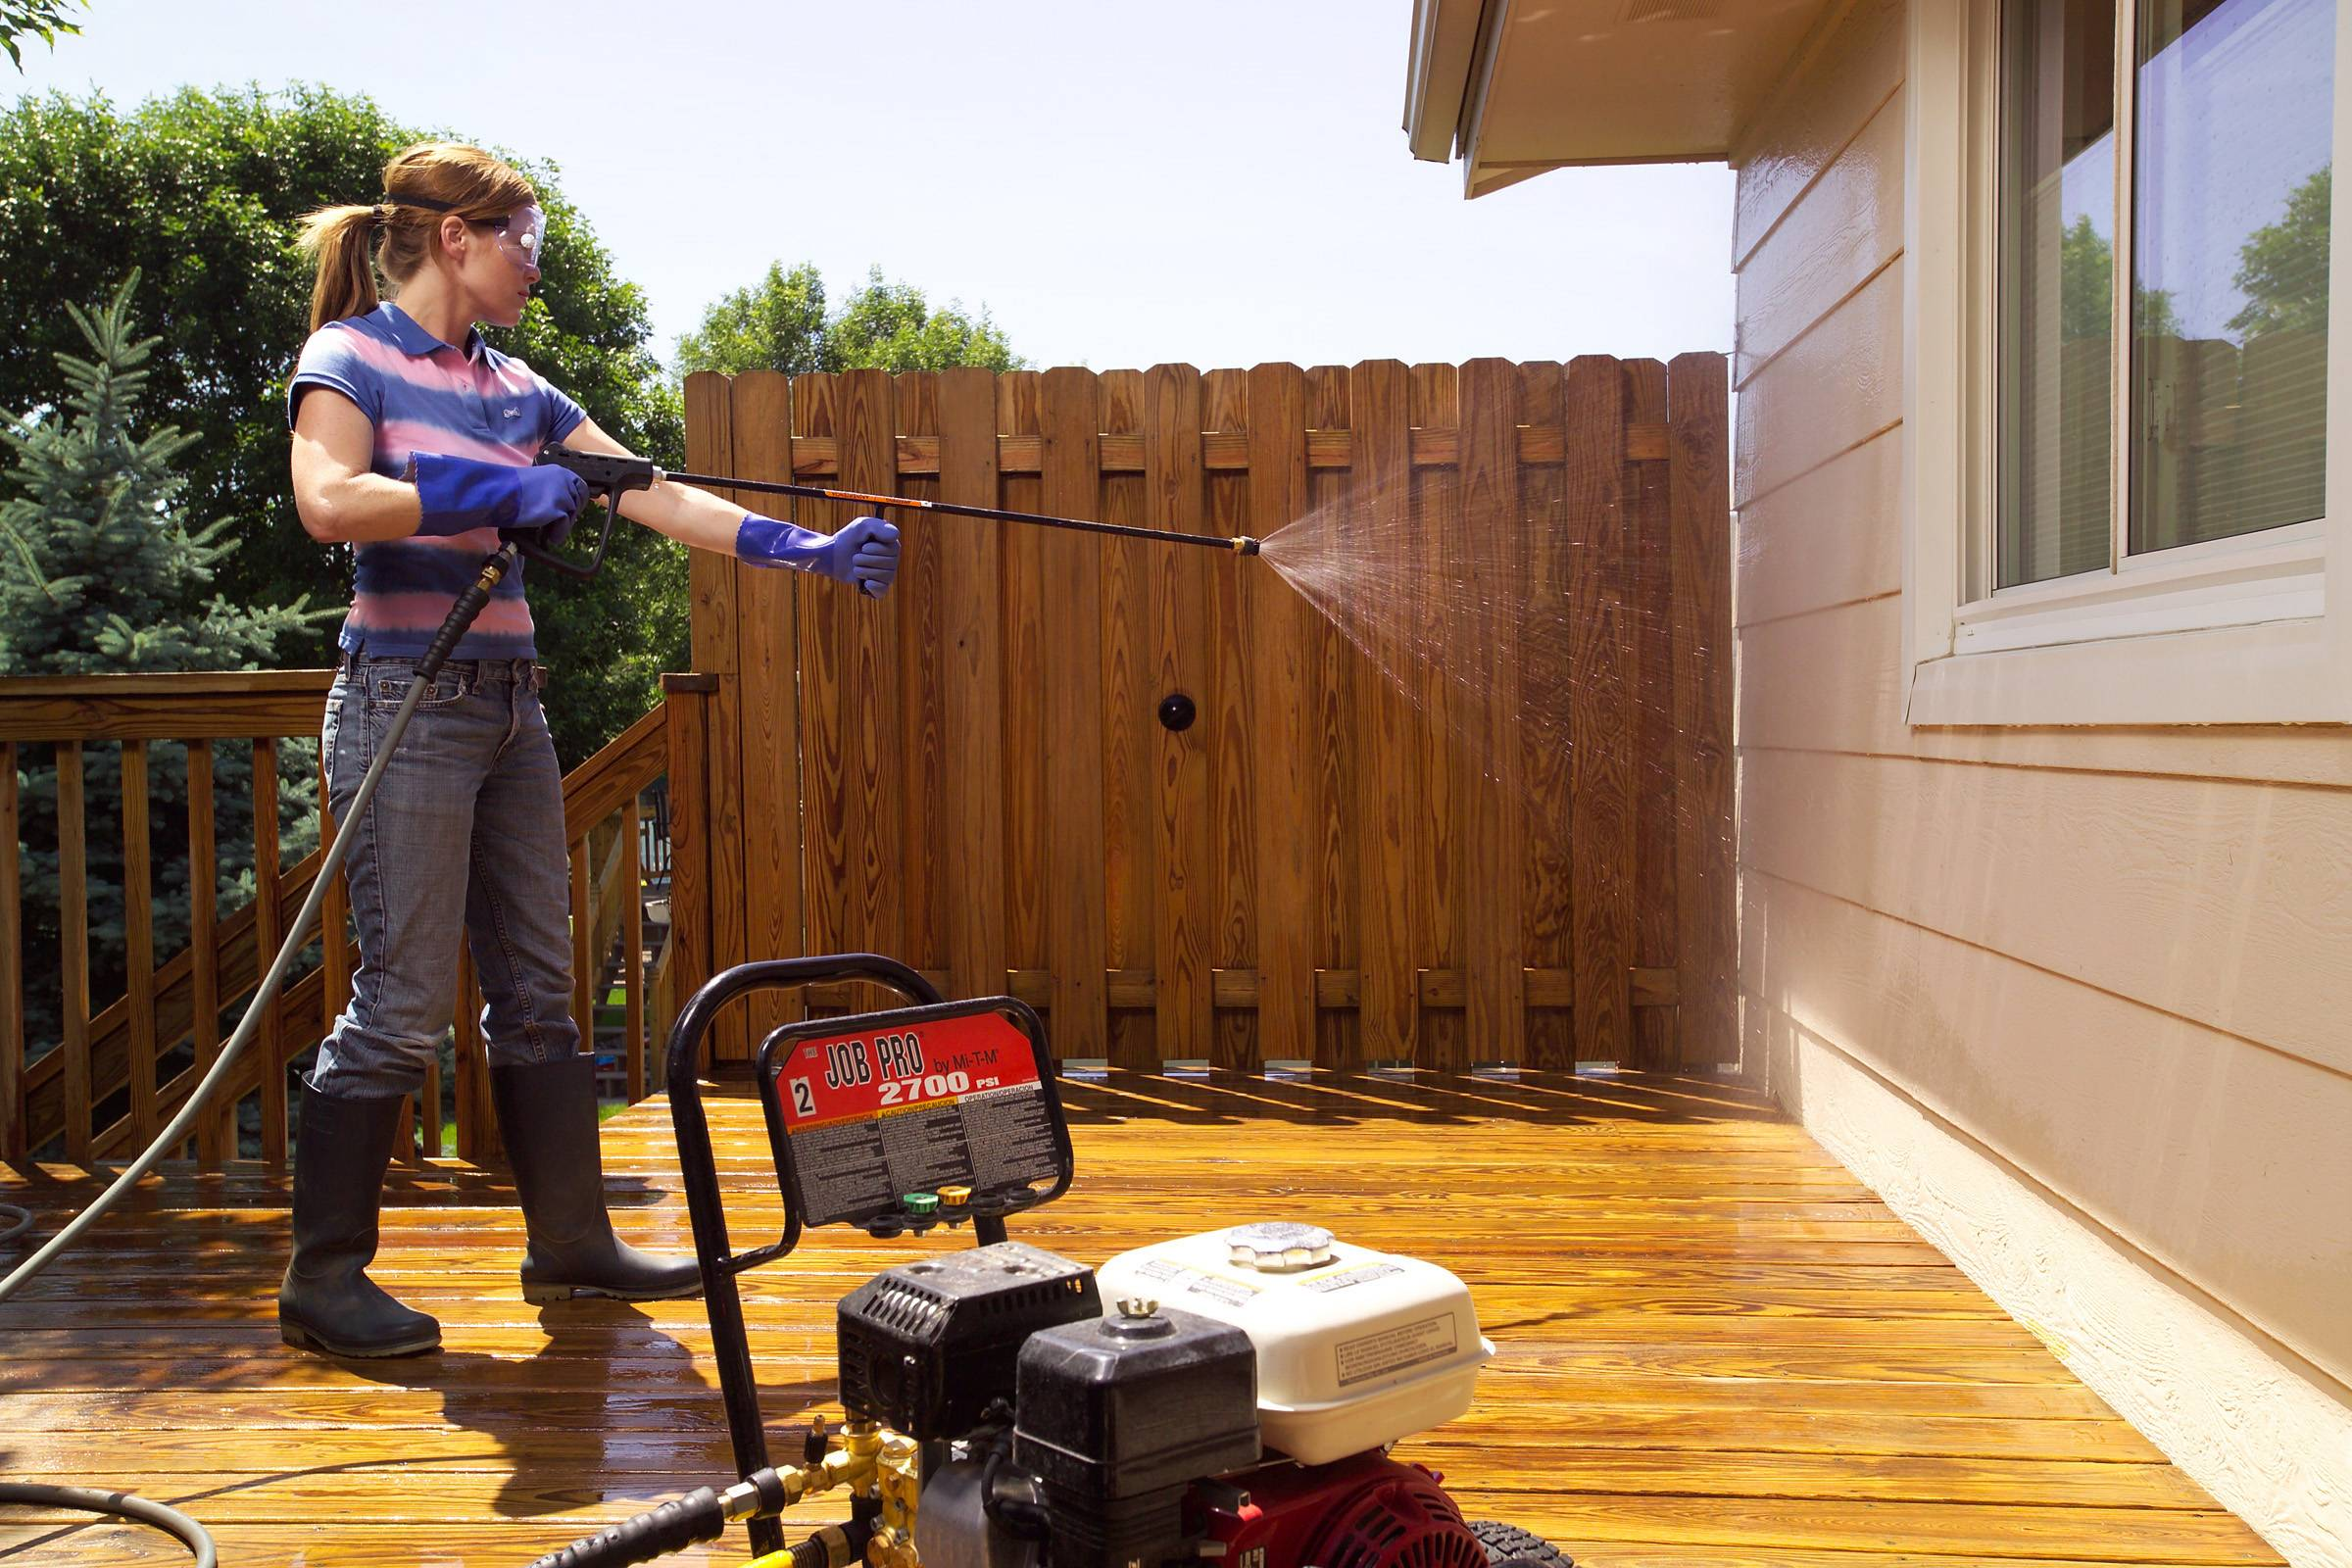 In addition to wooden decks, spray from a power washer can be used to clean and rinse siding and the windows of a house. Use a low pressure to avoid damage.